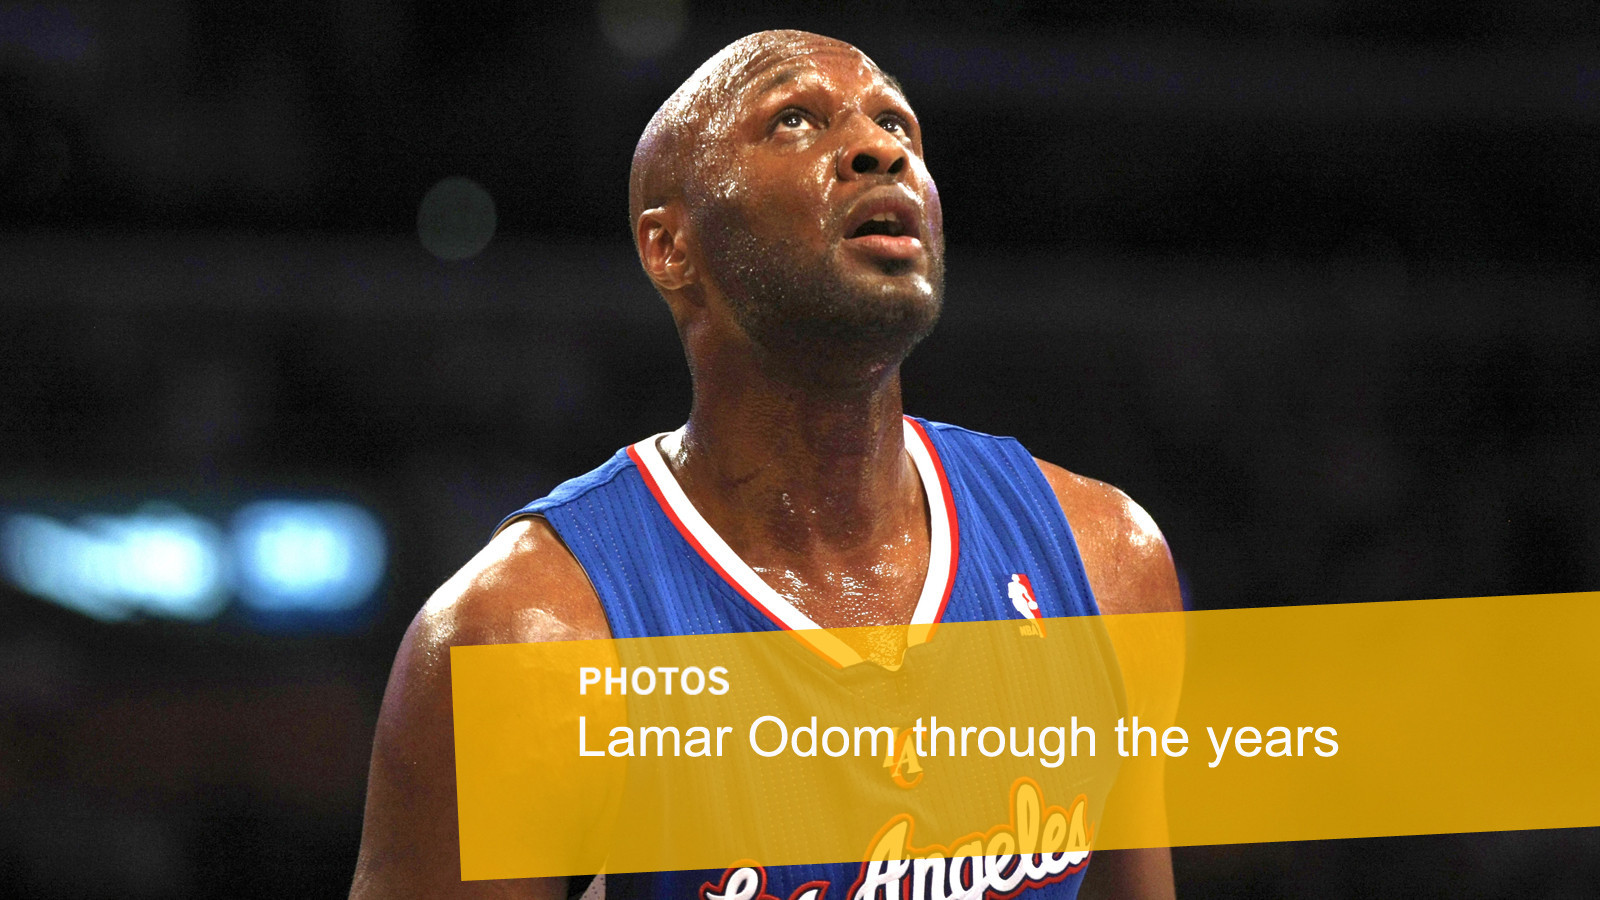 Lamar Odom improves He is talking texting doing good LA Times